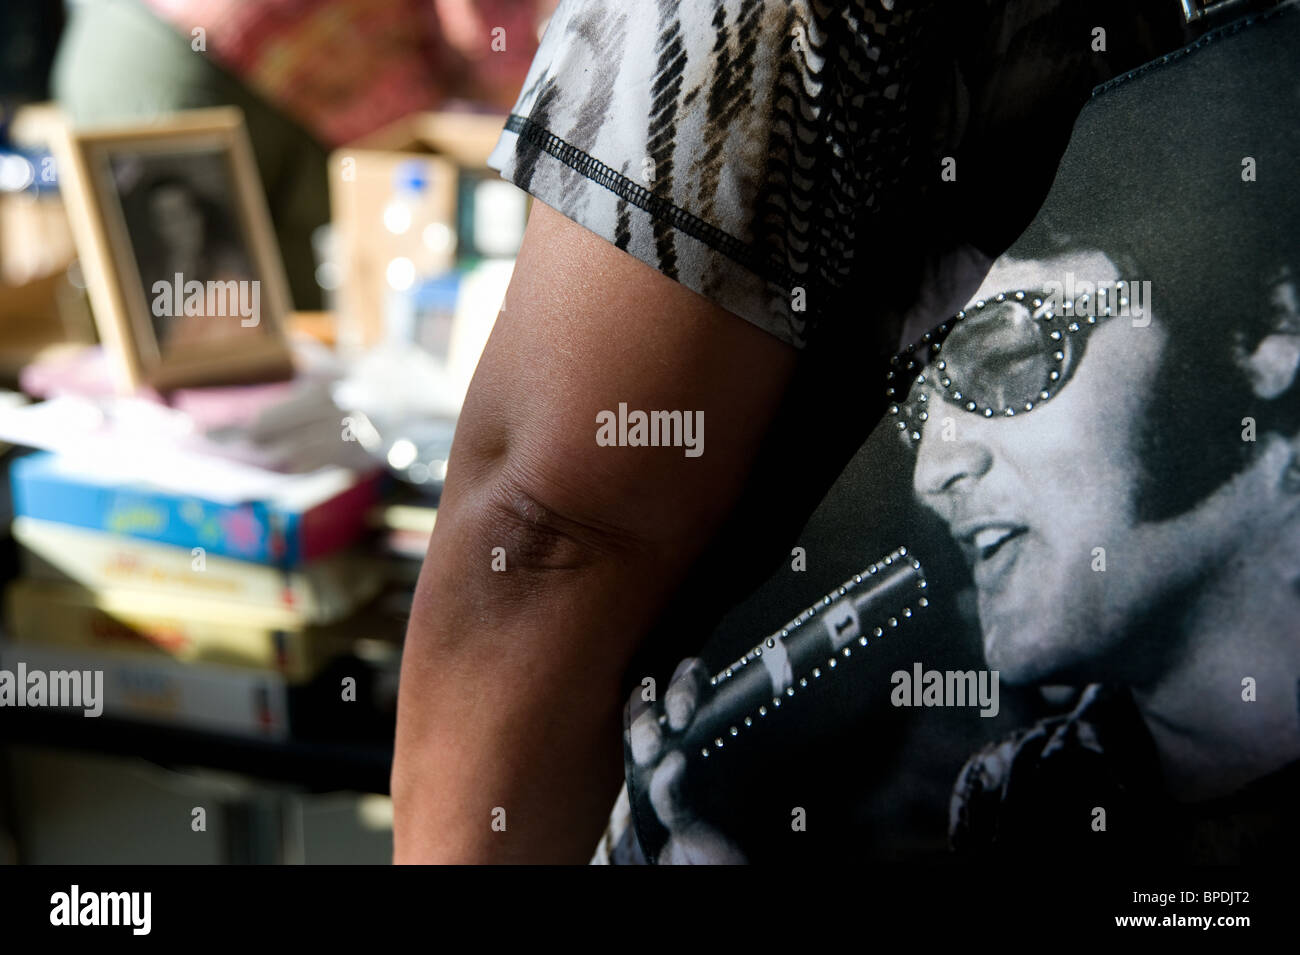 Woman wearing a bag with an image of Elvis Presley on it. - Stock Image